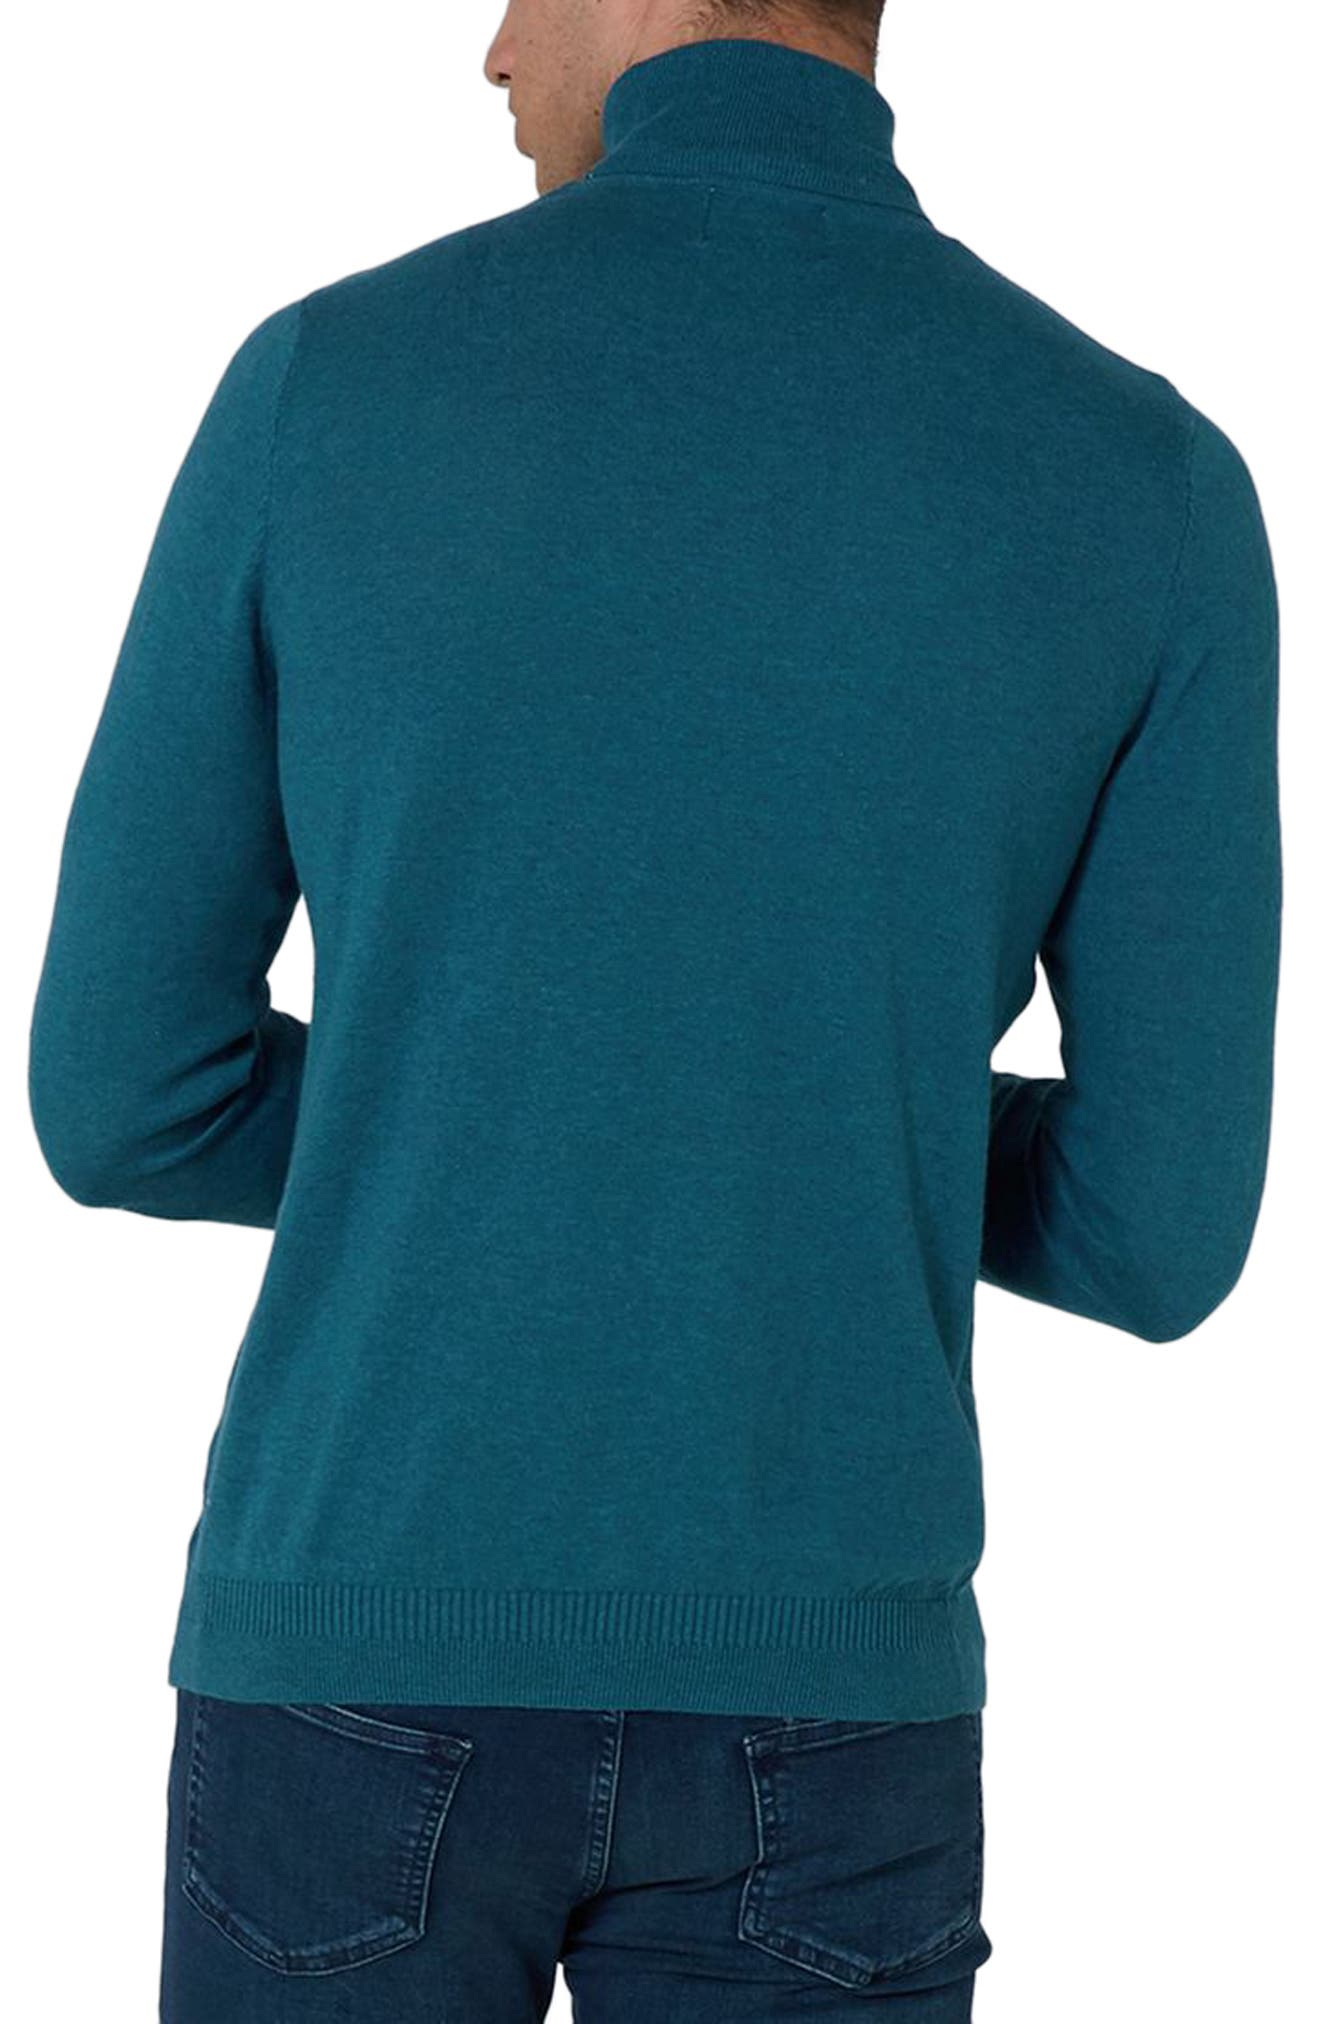 Cotton Turtleneck Sweater,                             Alternate thumbnail 2, color,                             Blue